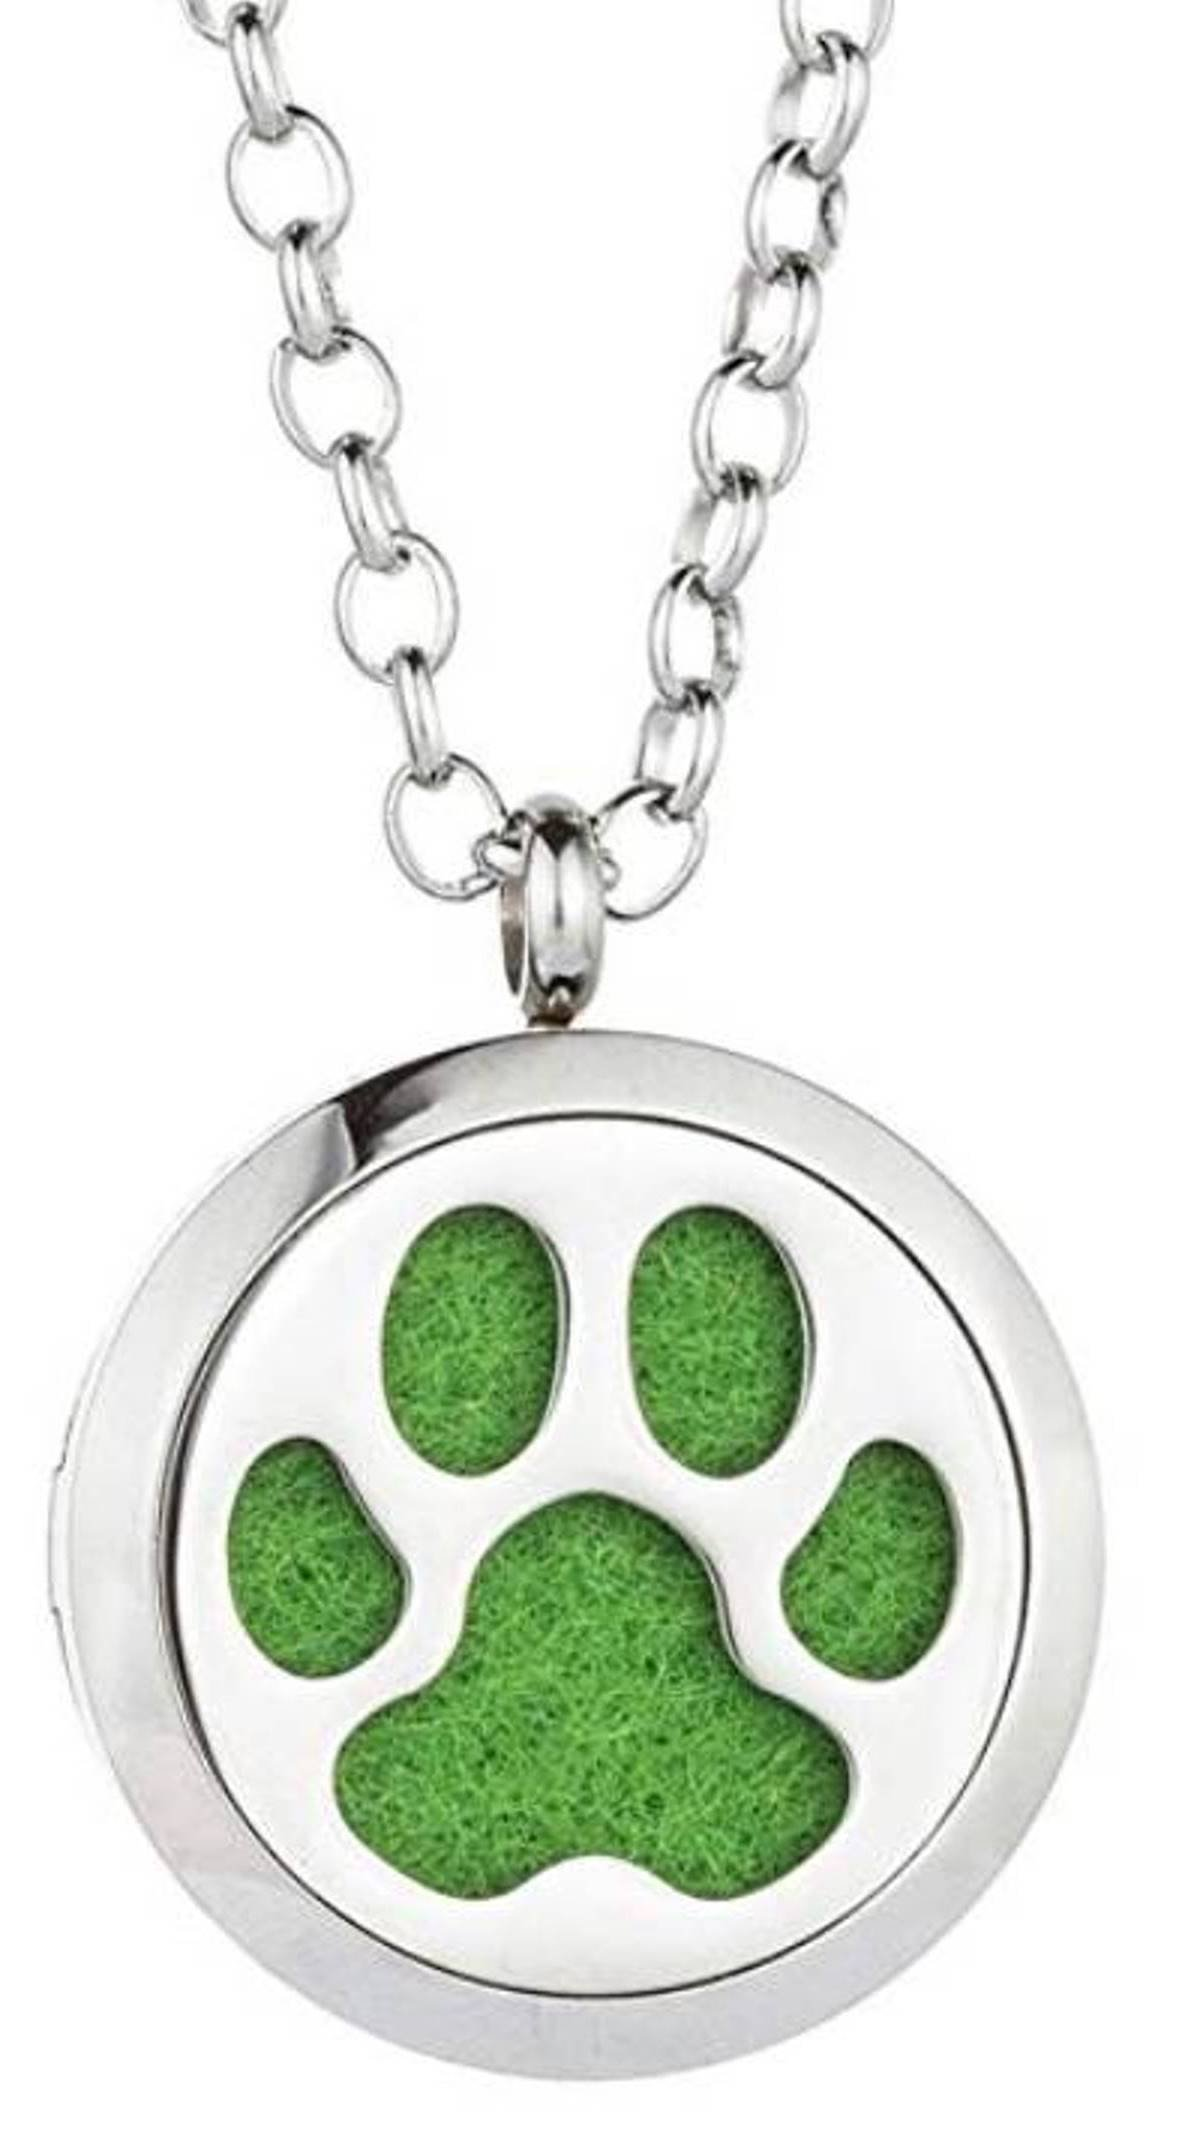 Essential Oil Diffuser Necklace - Dog Paw Design- Aromatherapy Jewelry - Hypoallergenic 316L Stainless Steel Locket Pendant with 12 Assorted Colorful Pads, 21'' Adjustable Chain